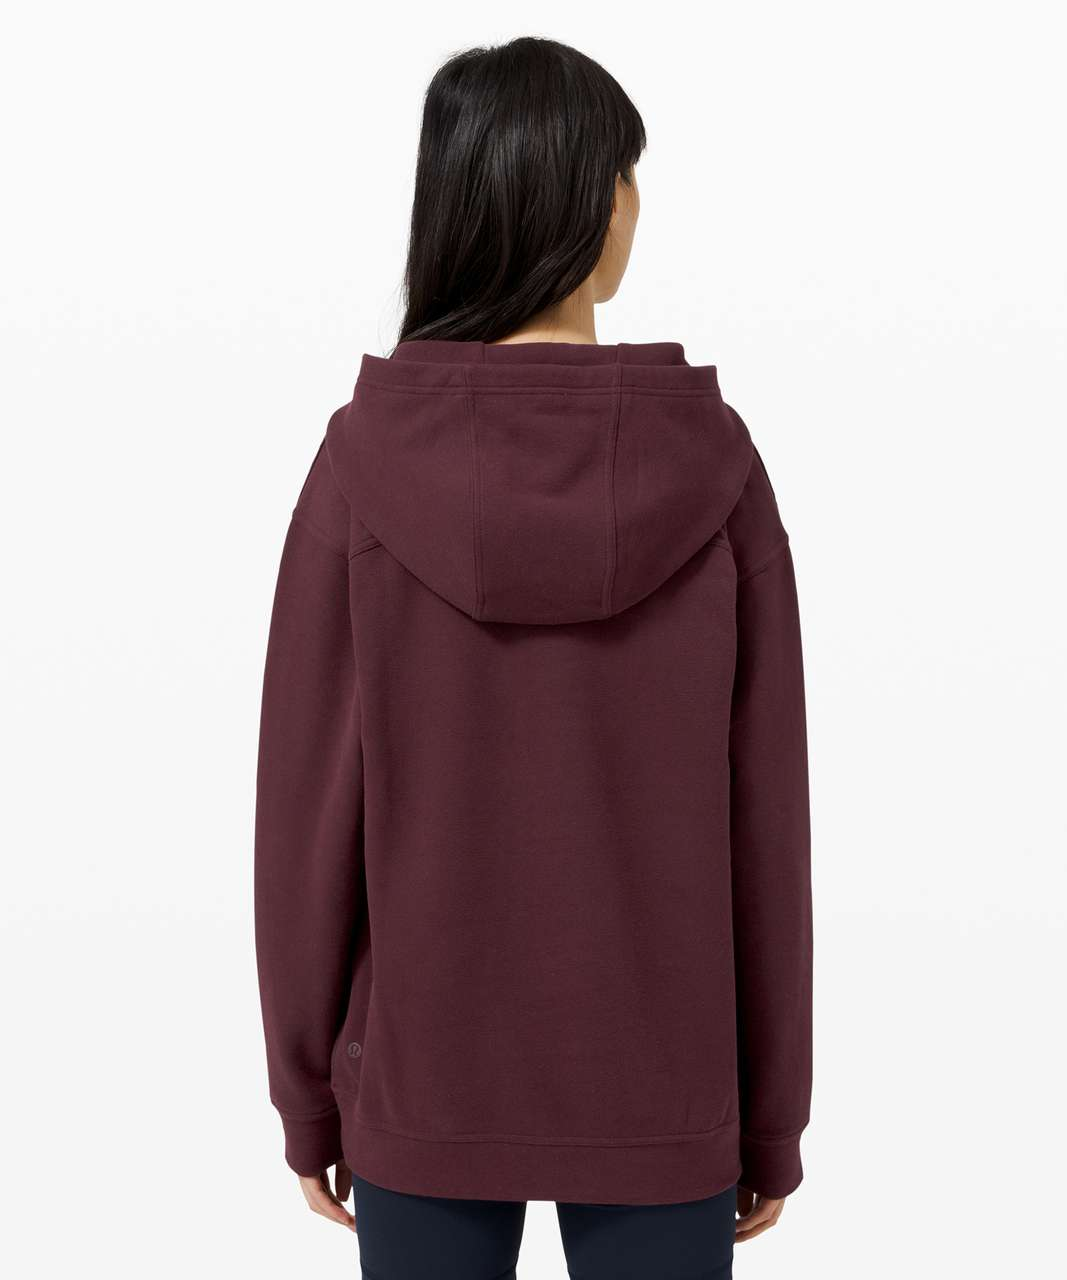 Lululemon All Yours Hoodie - Cassis